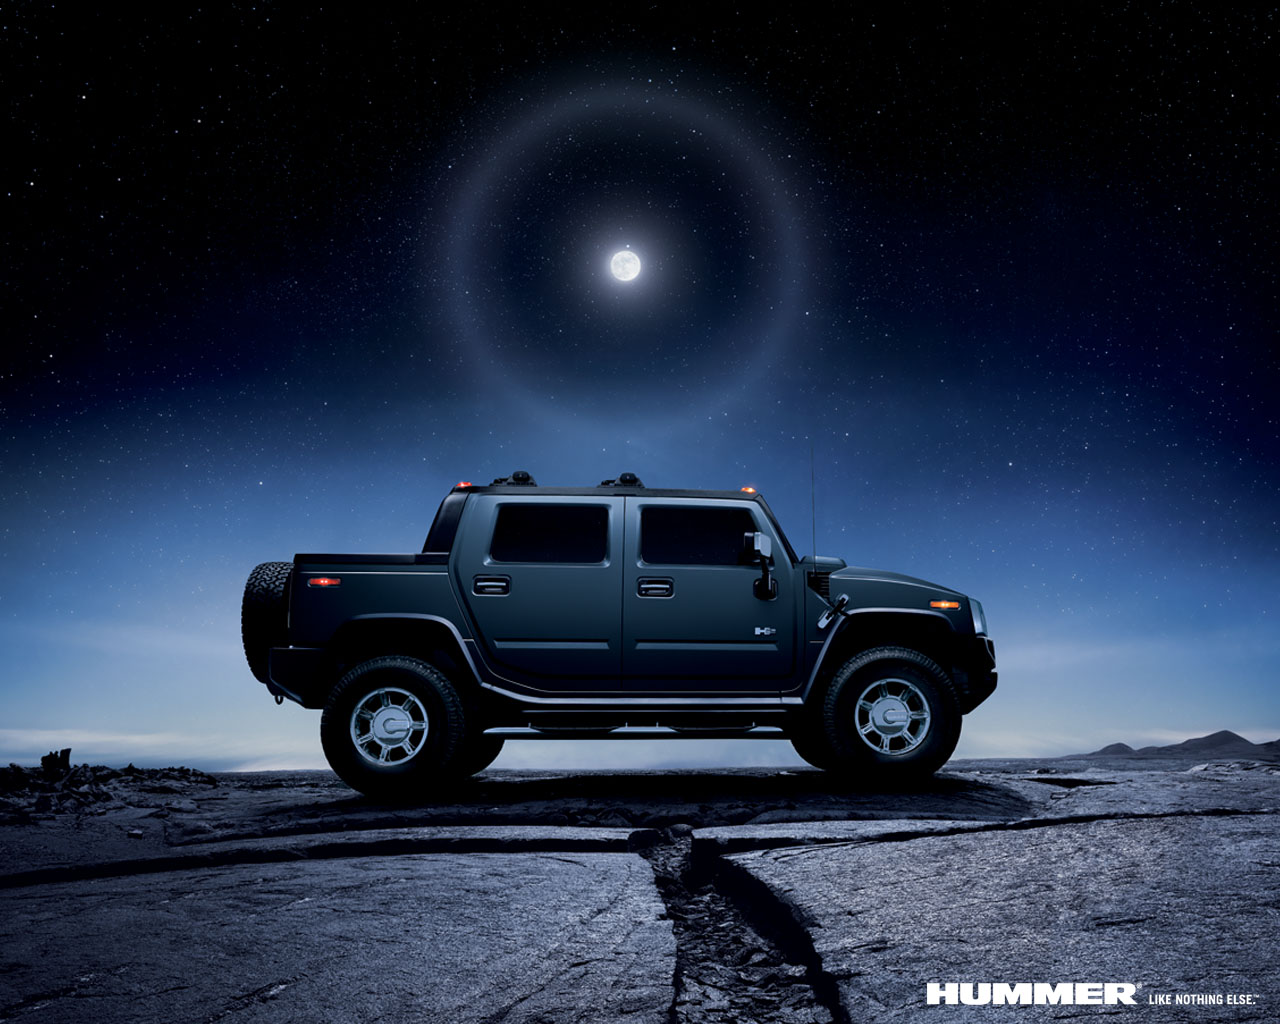 17 Best <b>images</b> about <b>Hummer</b> on Pinterest